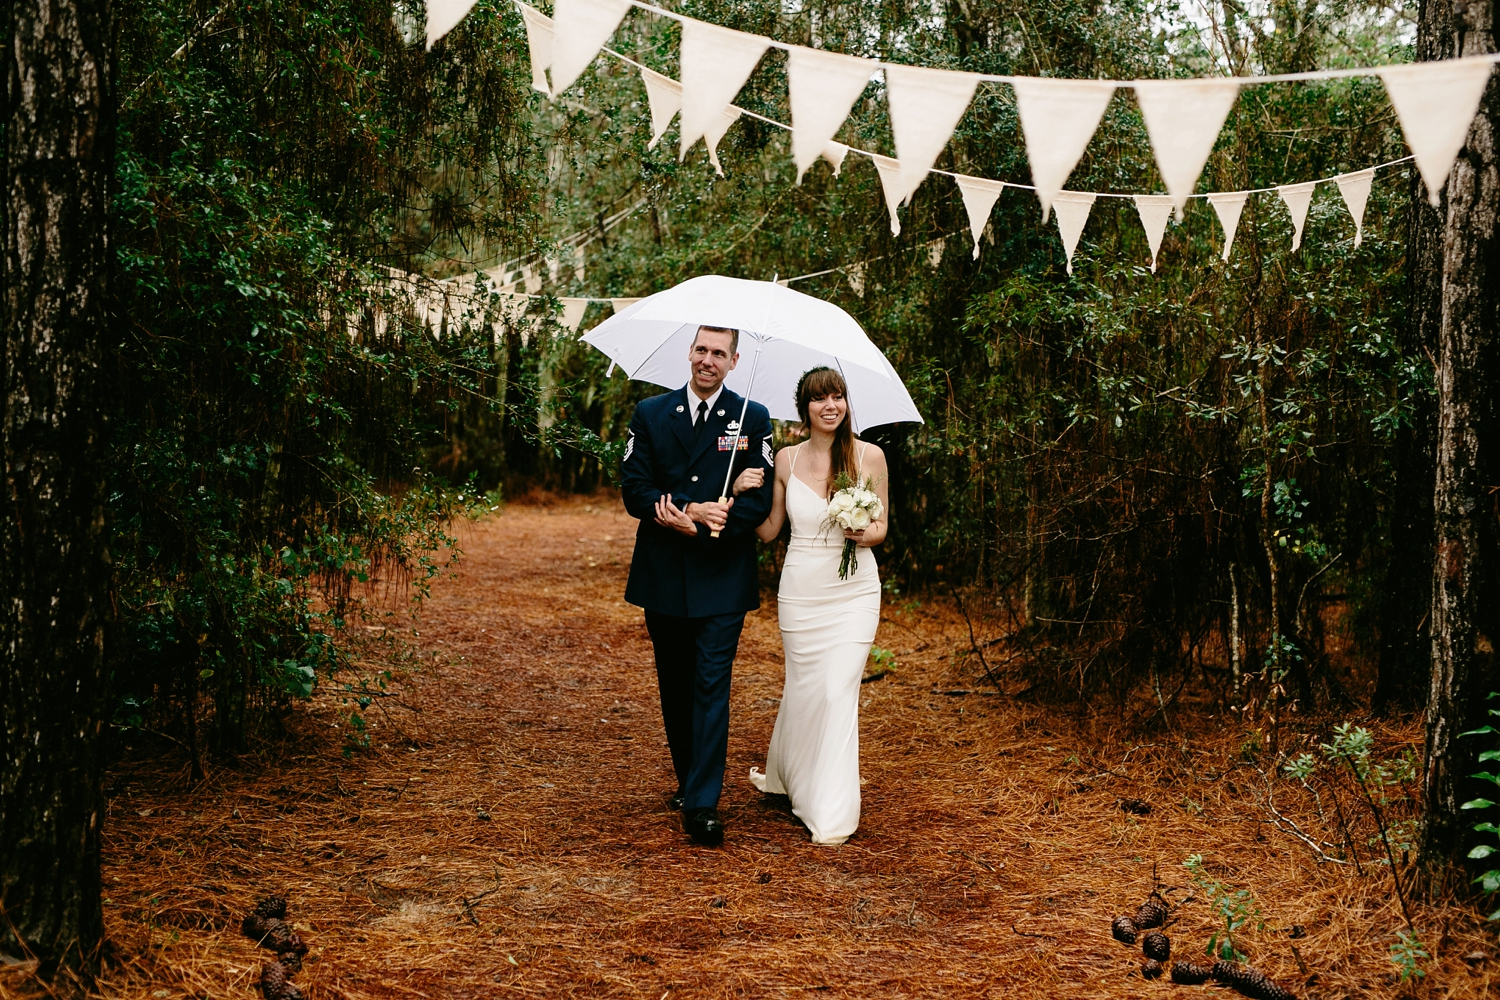 rainy-wedding-pictures-066